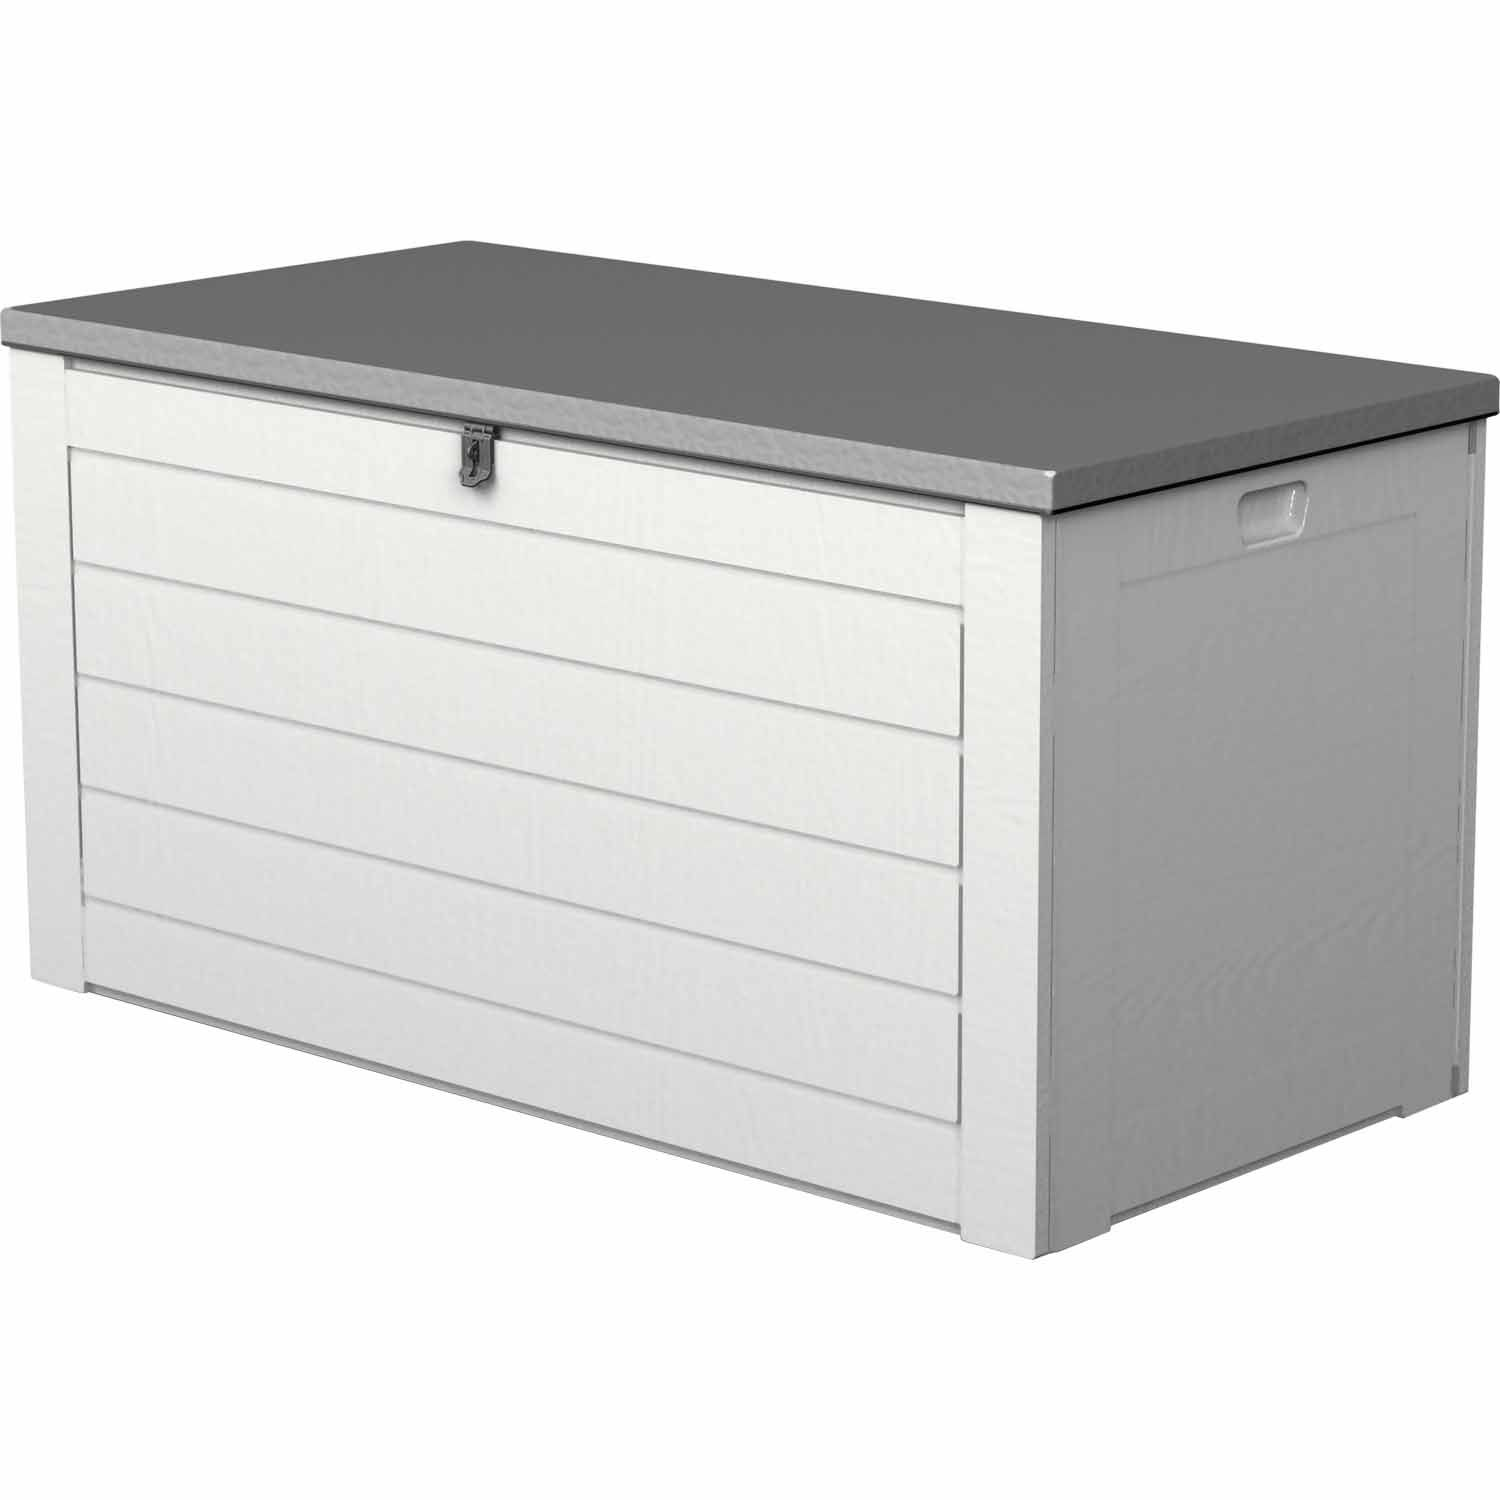 Nouveau Outdoor Storage Box Outdoor Furniture Accessories